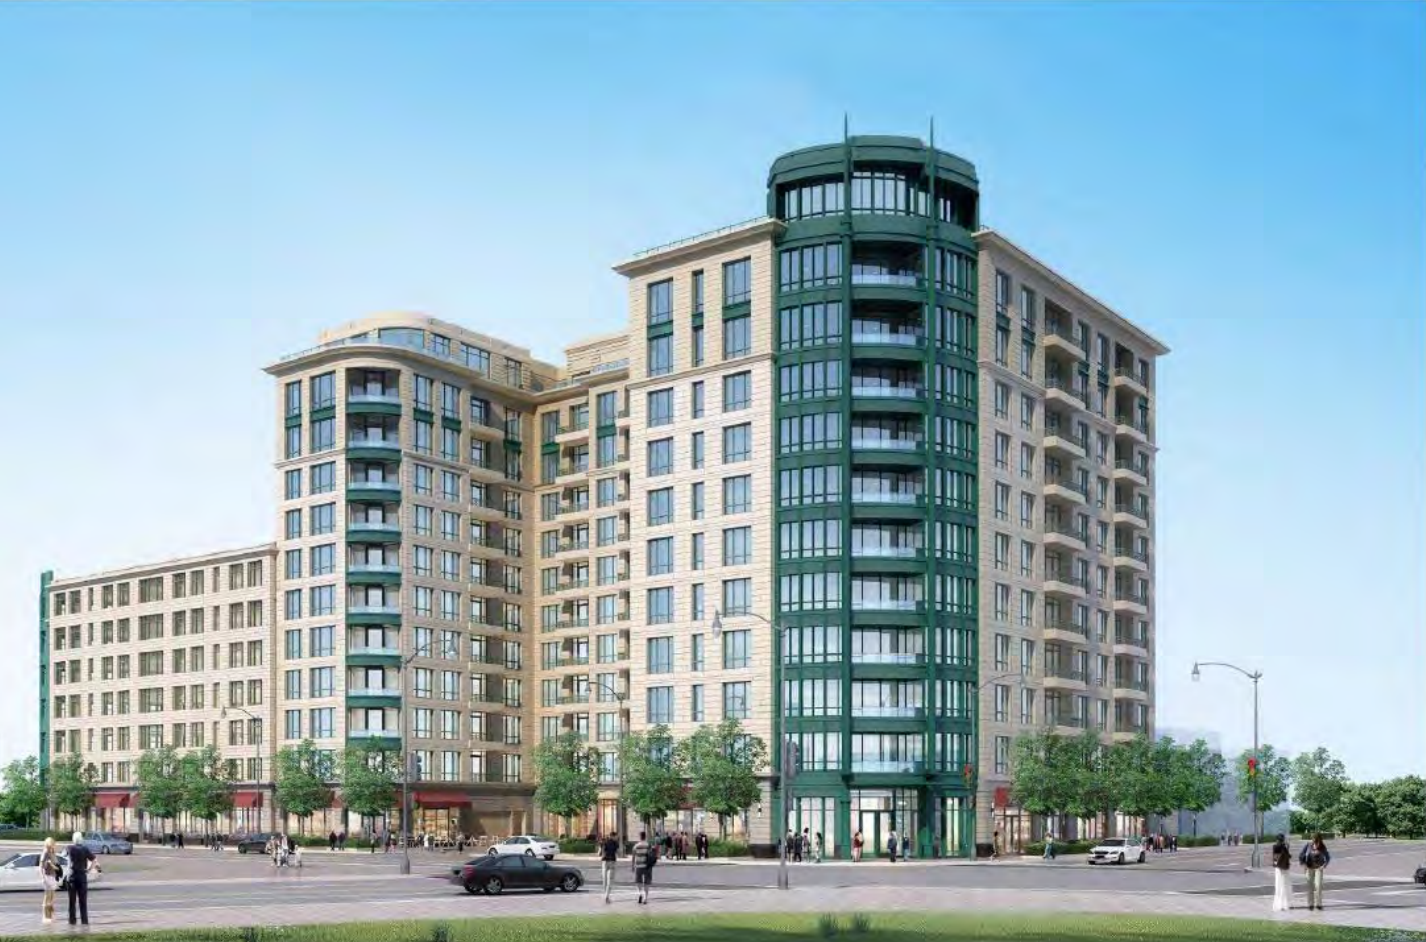 Twelve-story high-rise development proposed for suburban Skokie